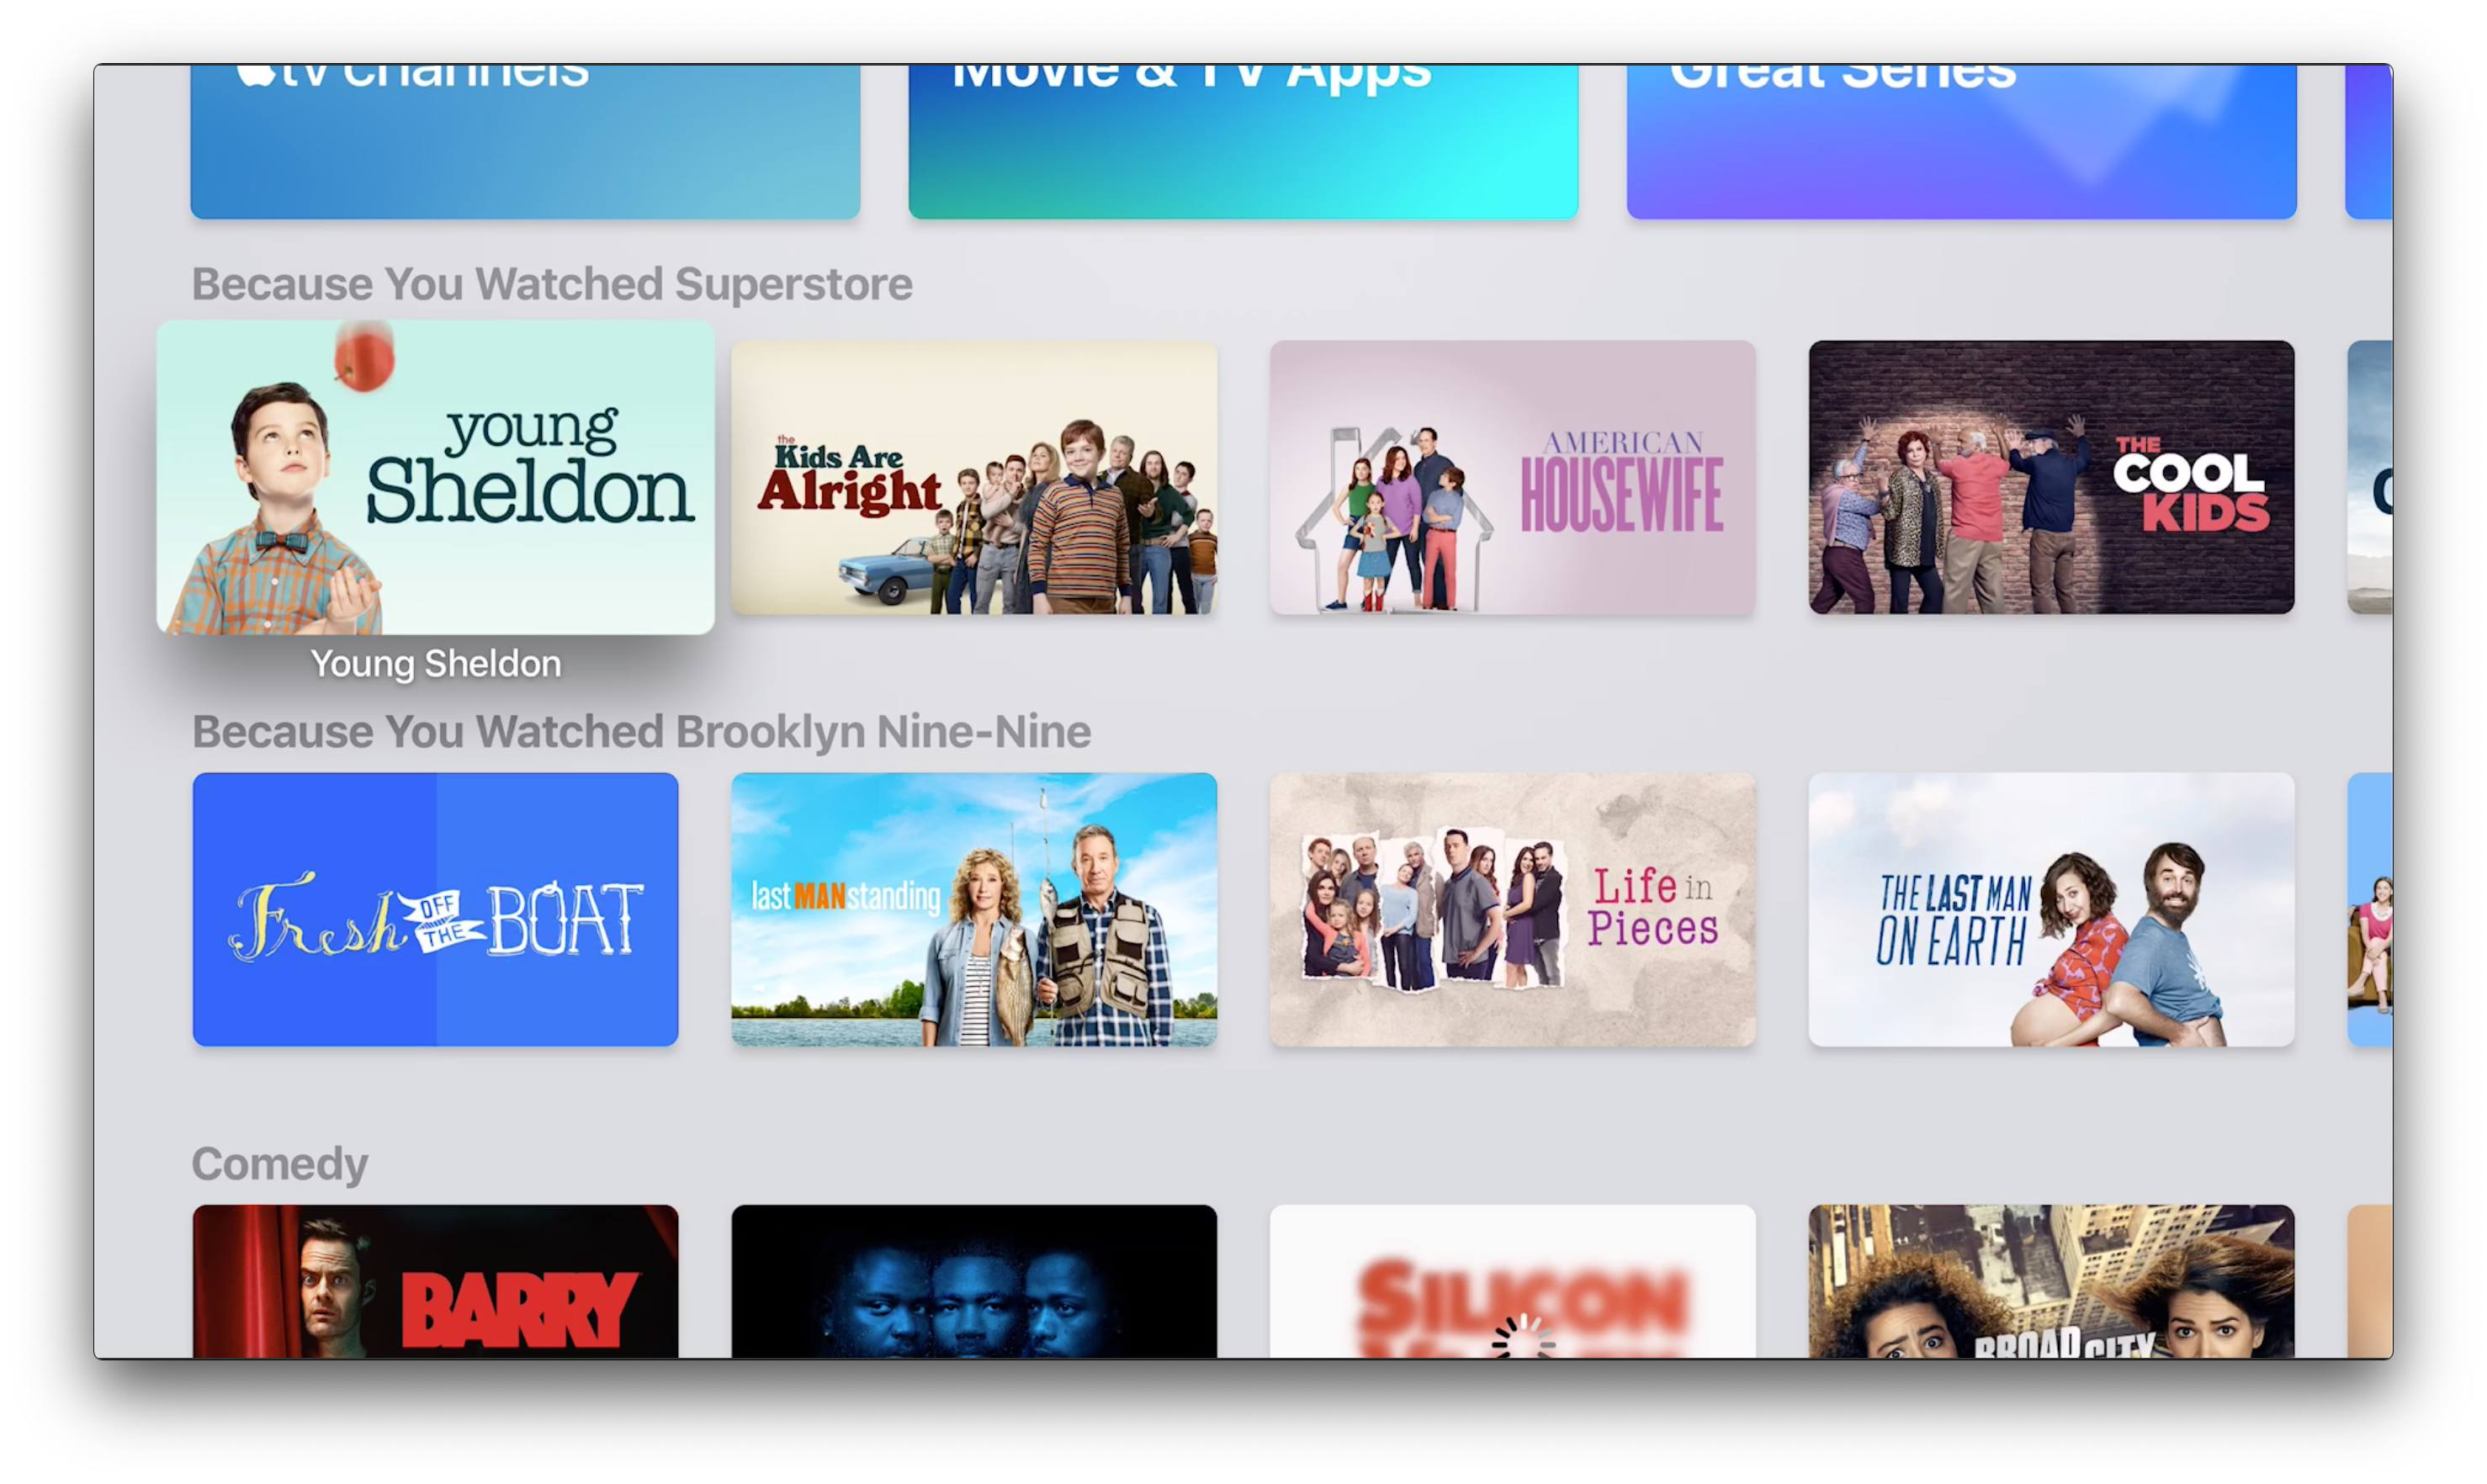 The new revamped Apple TV app is launching today